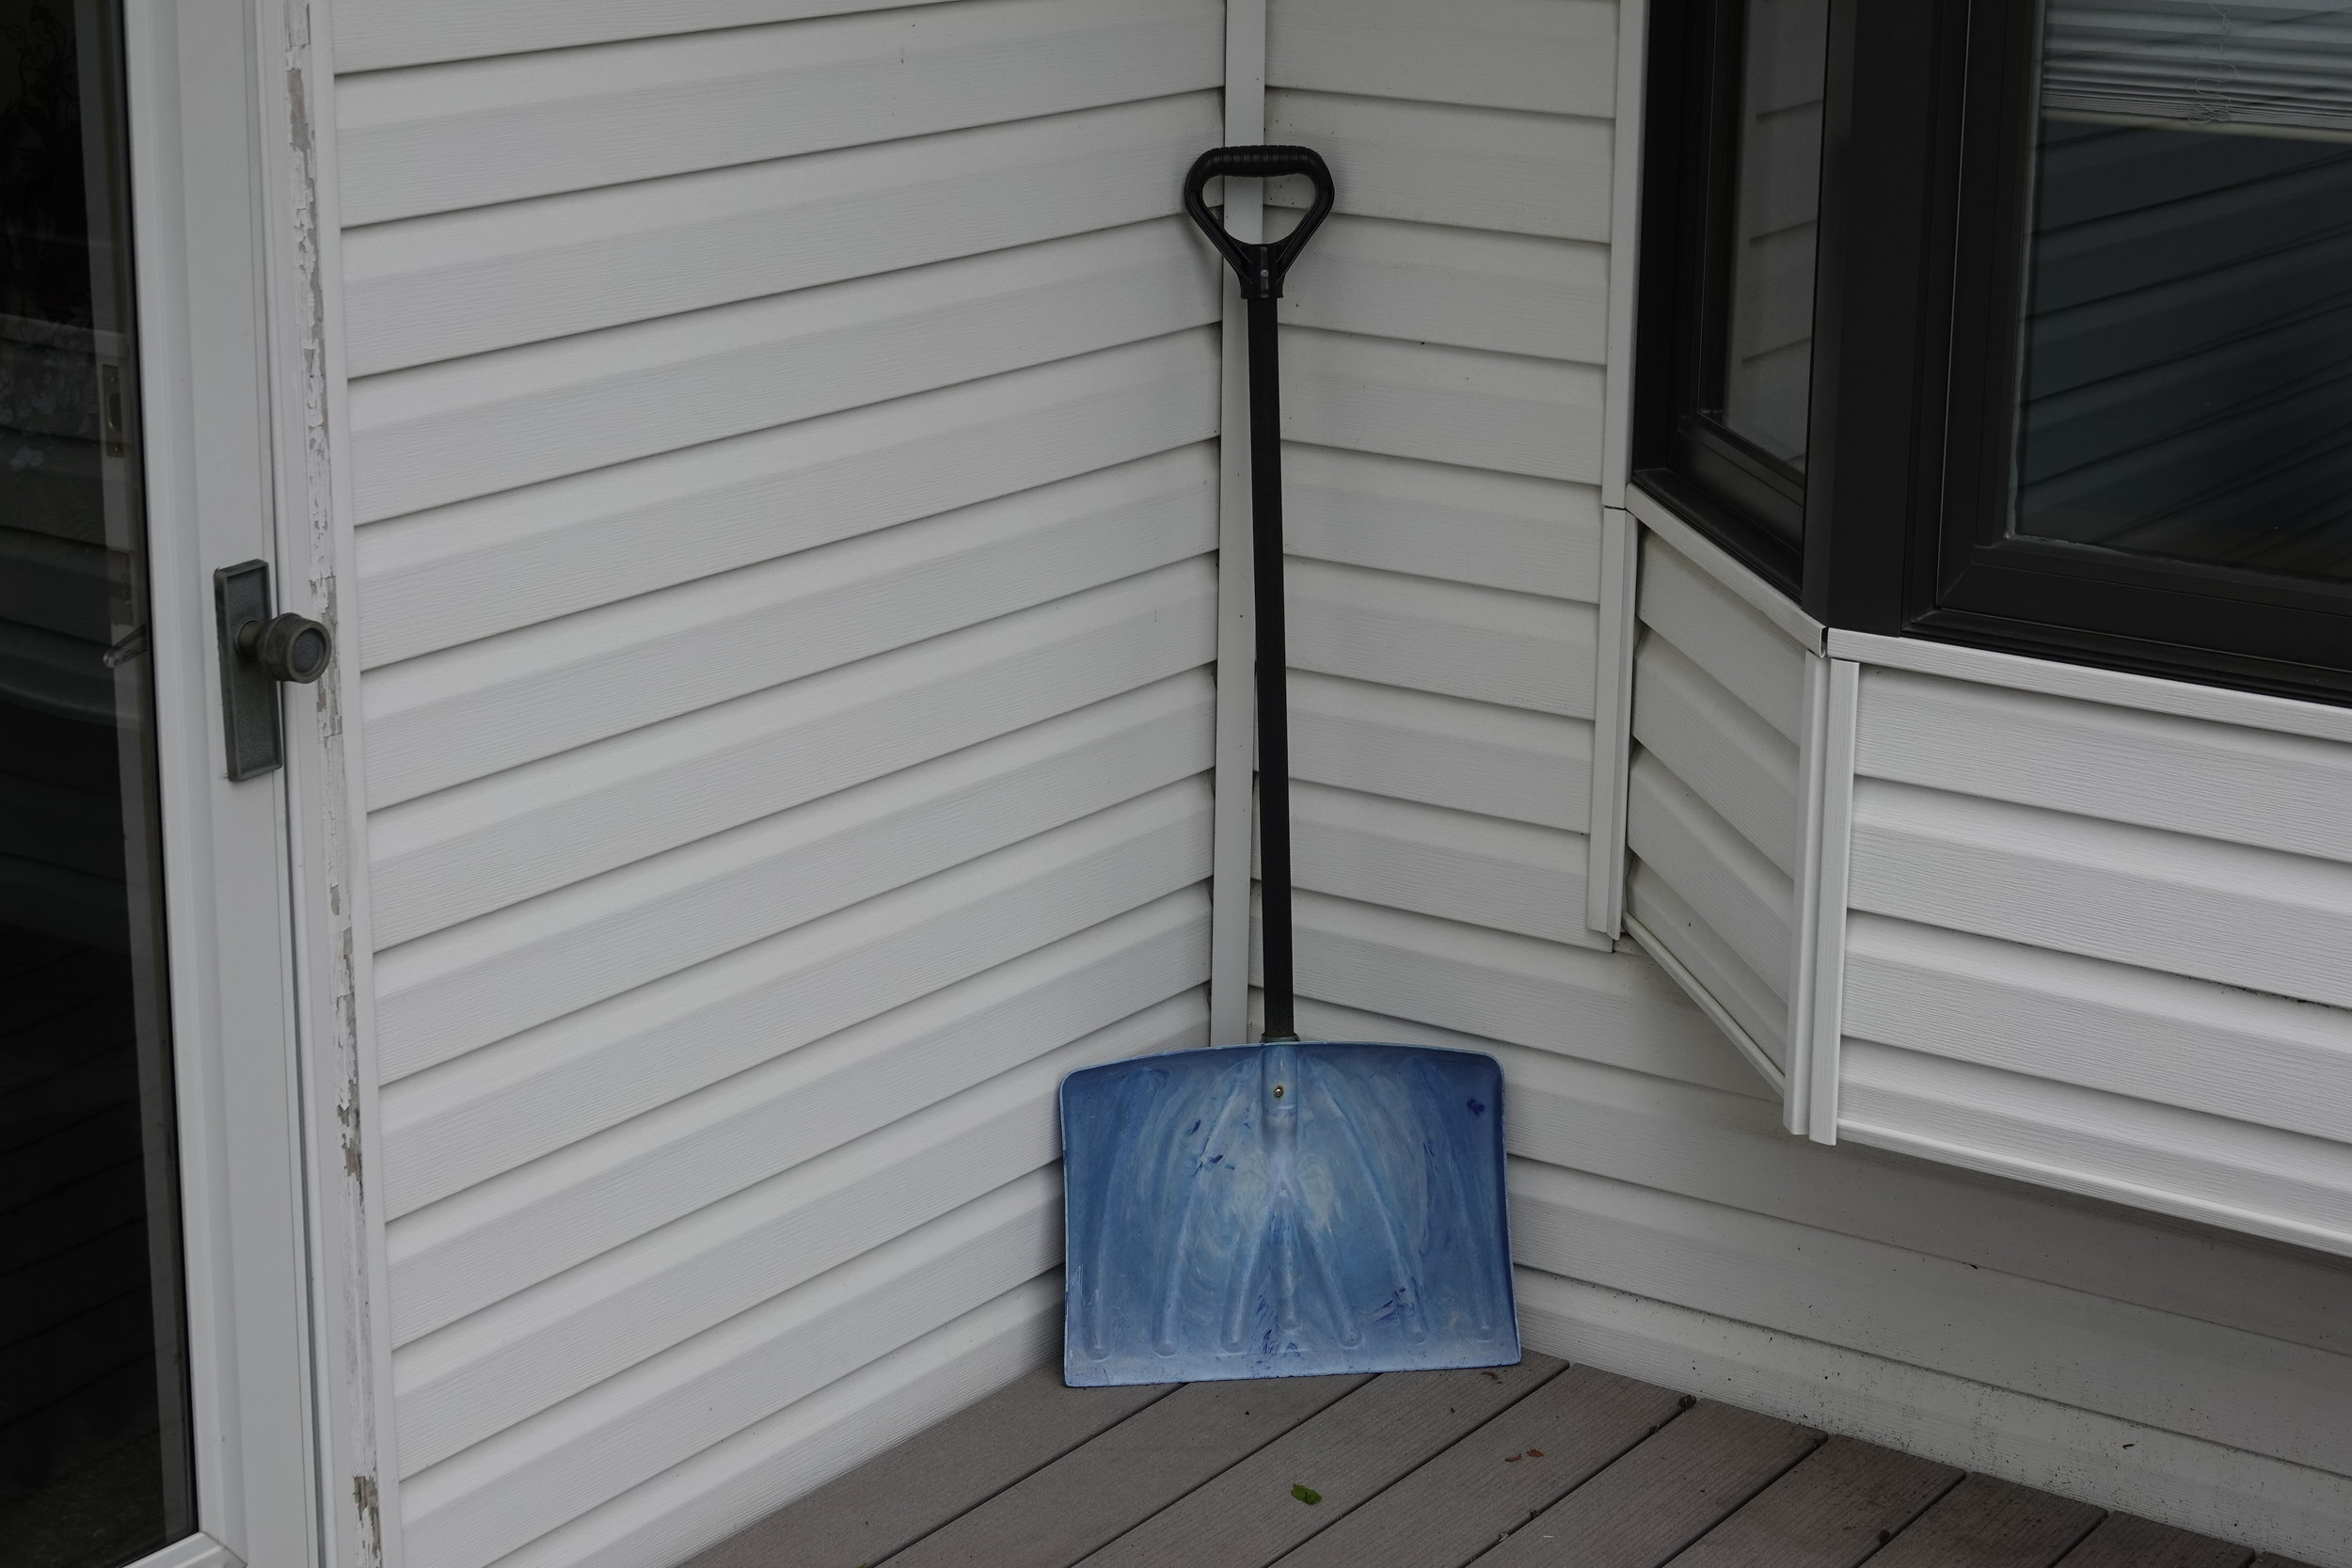 I put the snow shovel away. Winter is officially over.